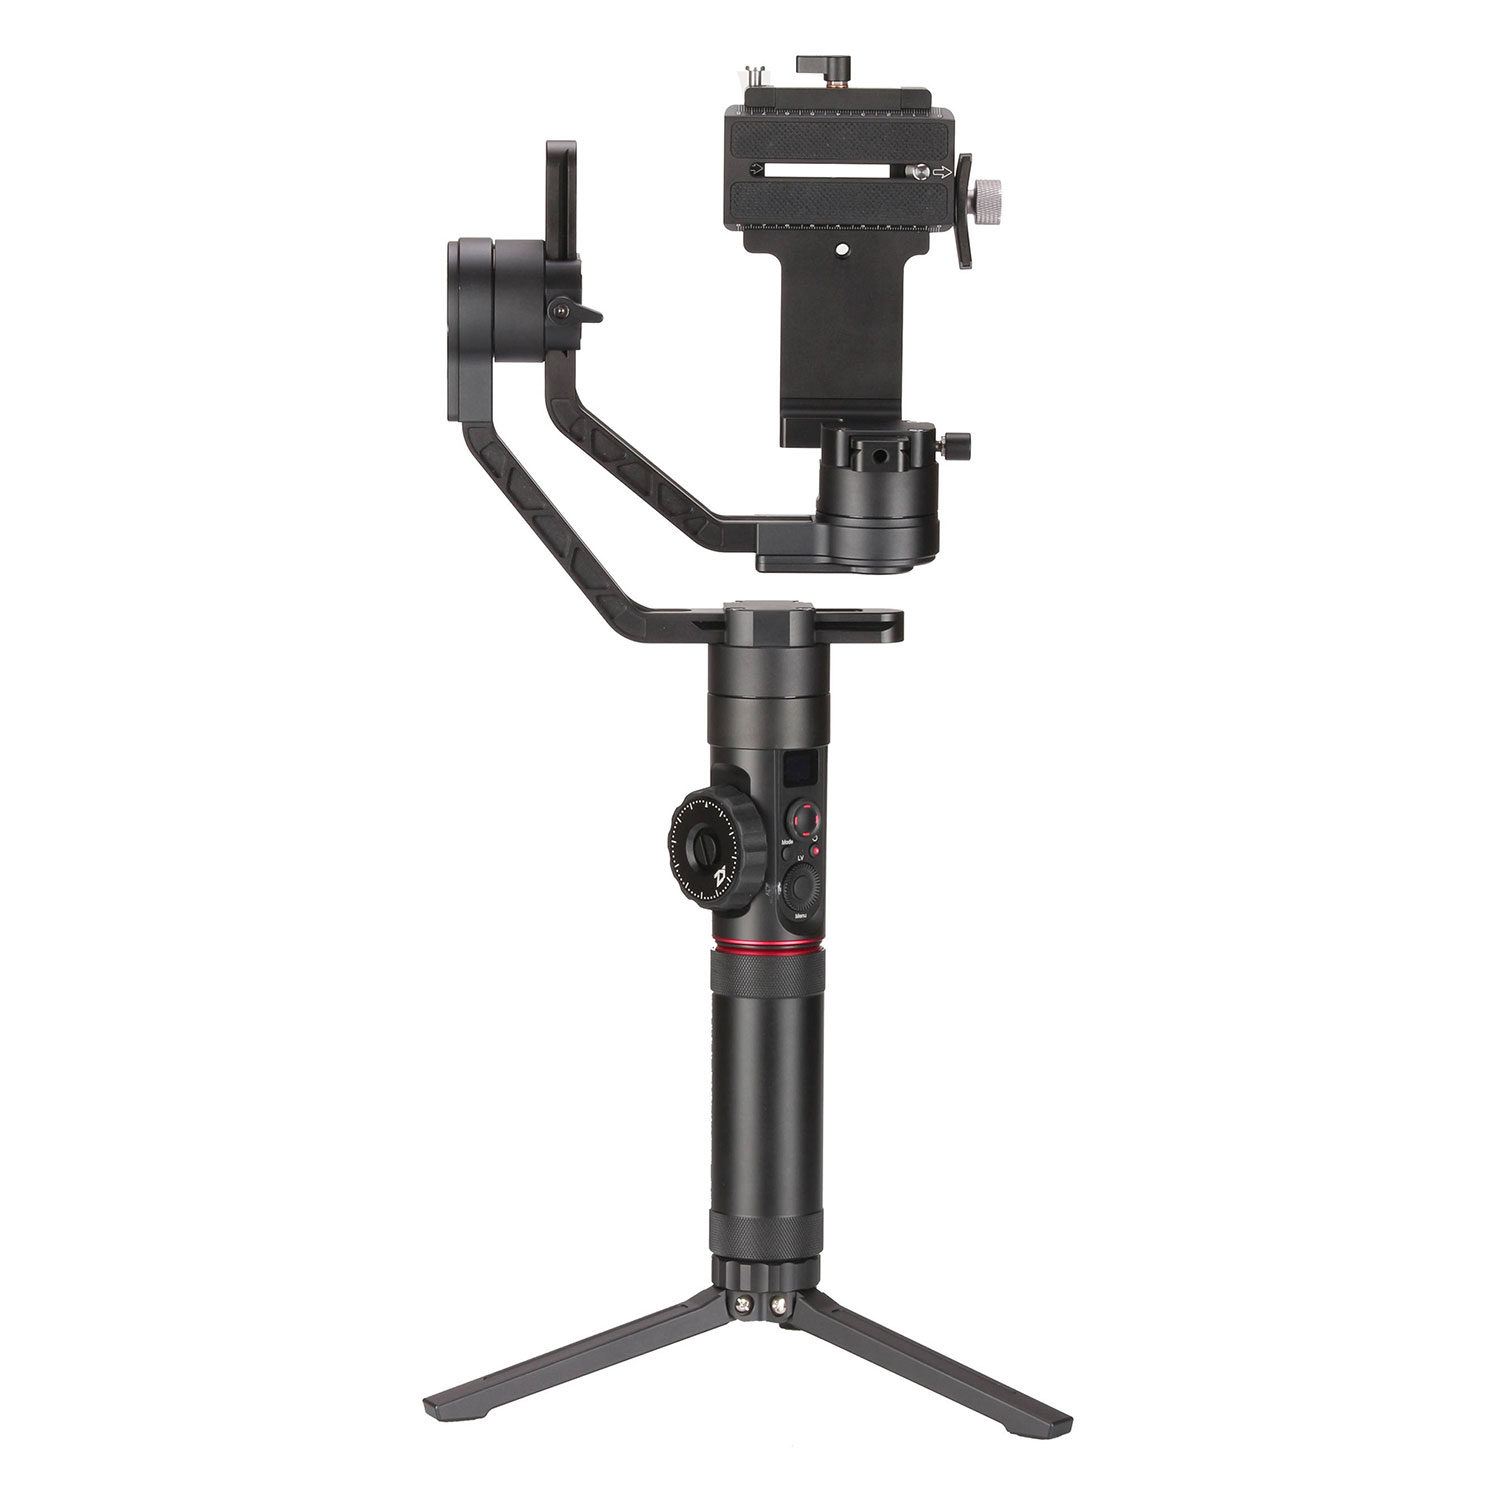 Zhiyun Crane 2 3-Axis Handheld Gimbal Stabilizer met Follow Focus